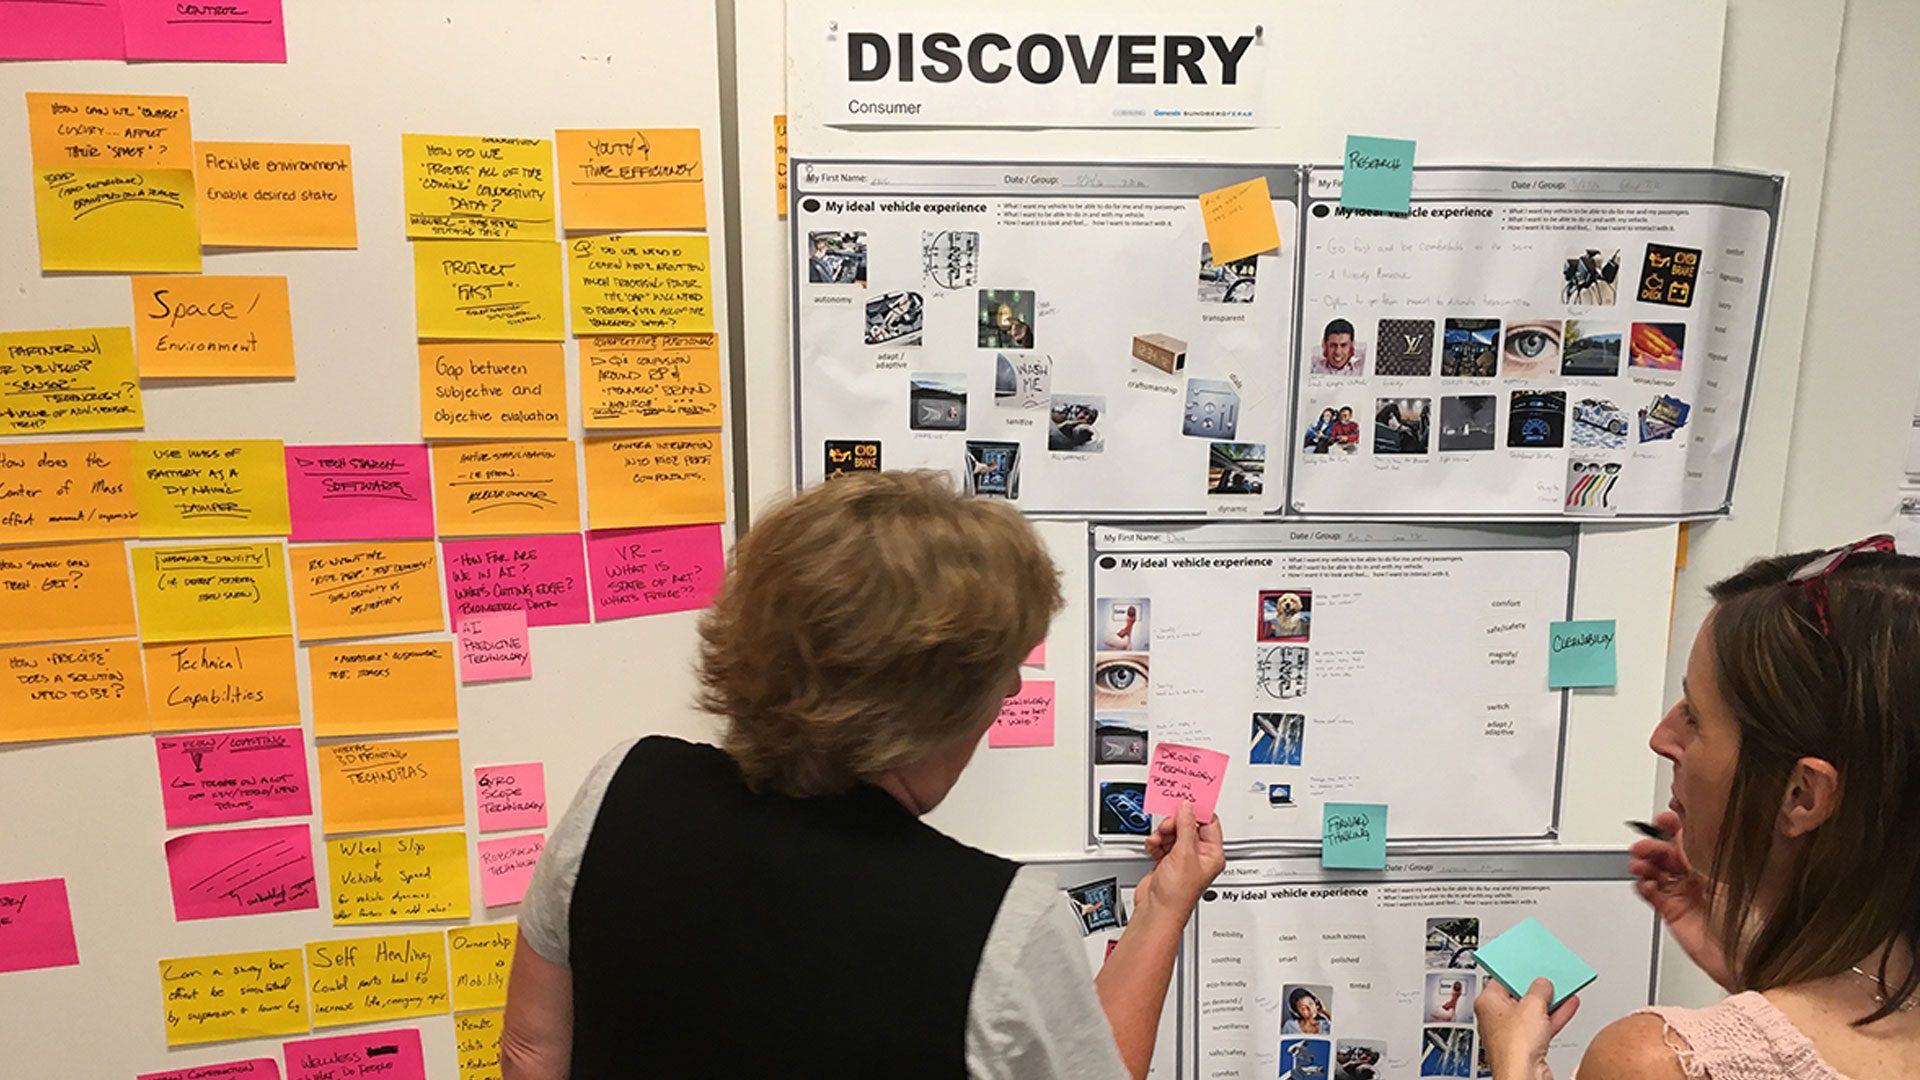 Startup Success Hinges on Design Research